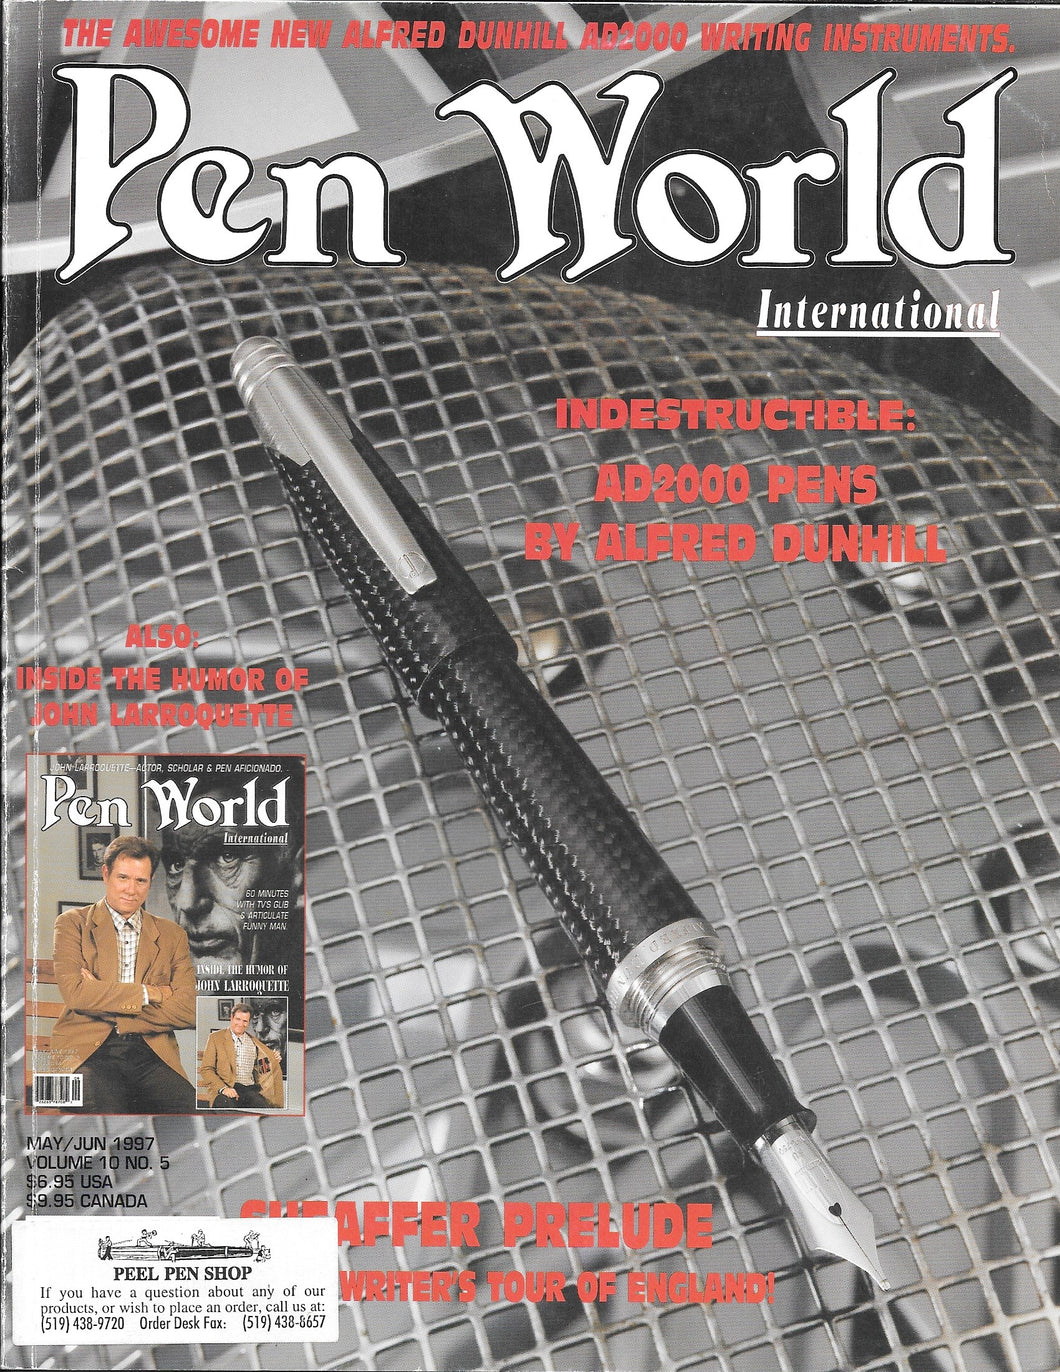 Pen World, Back Issues. May/June. 1997 Vol.10. No.5